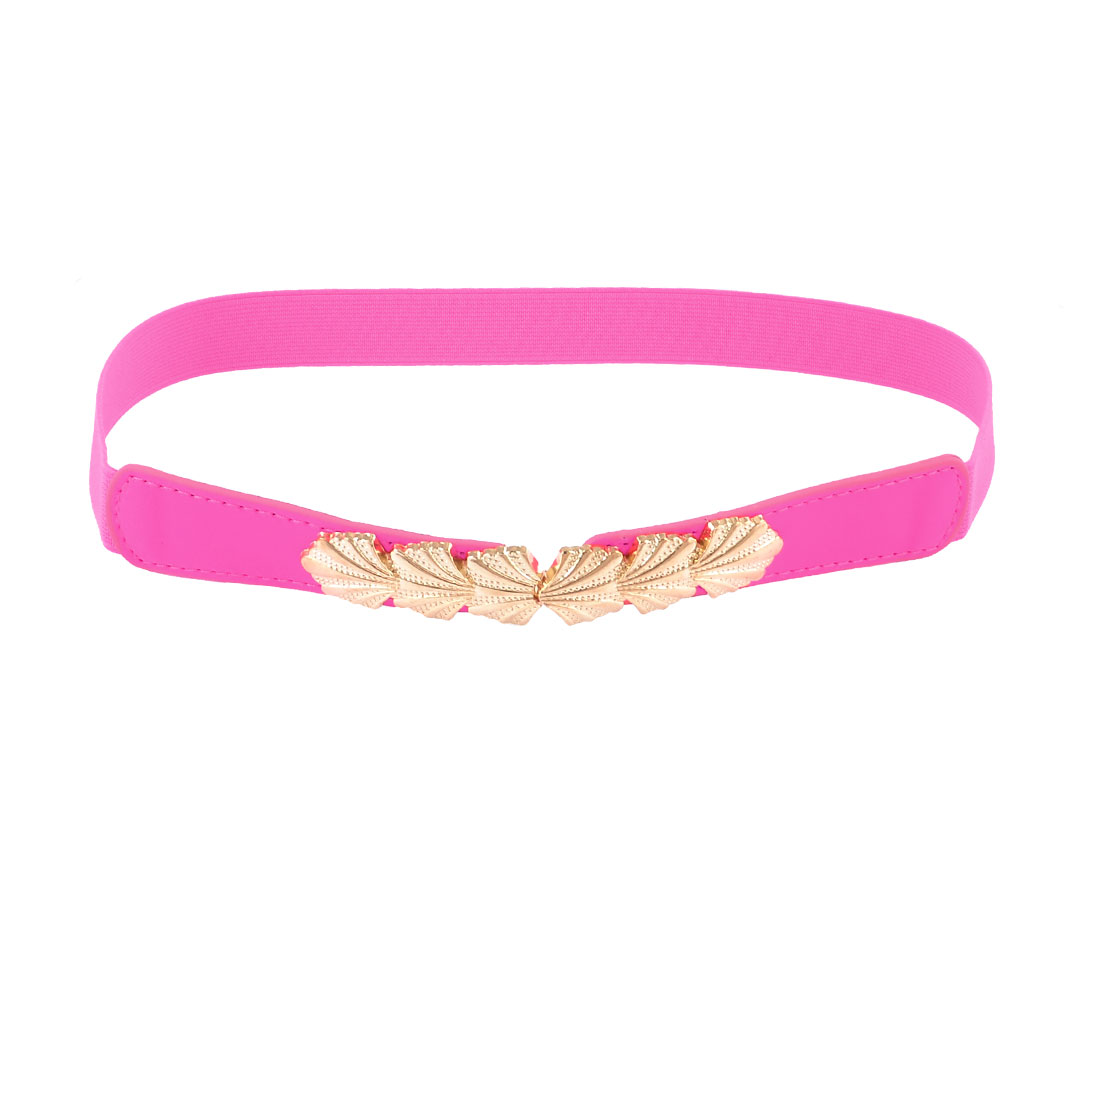 Lady Leaf Interlocking Buckle Stretch Fuchsia Cinch Belt Band Fuchsia